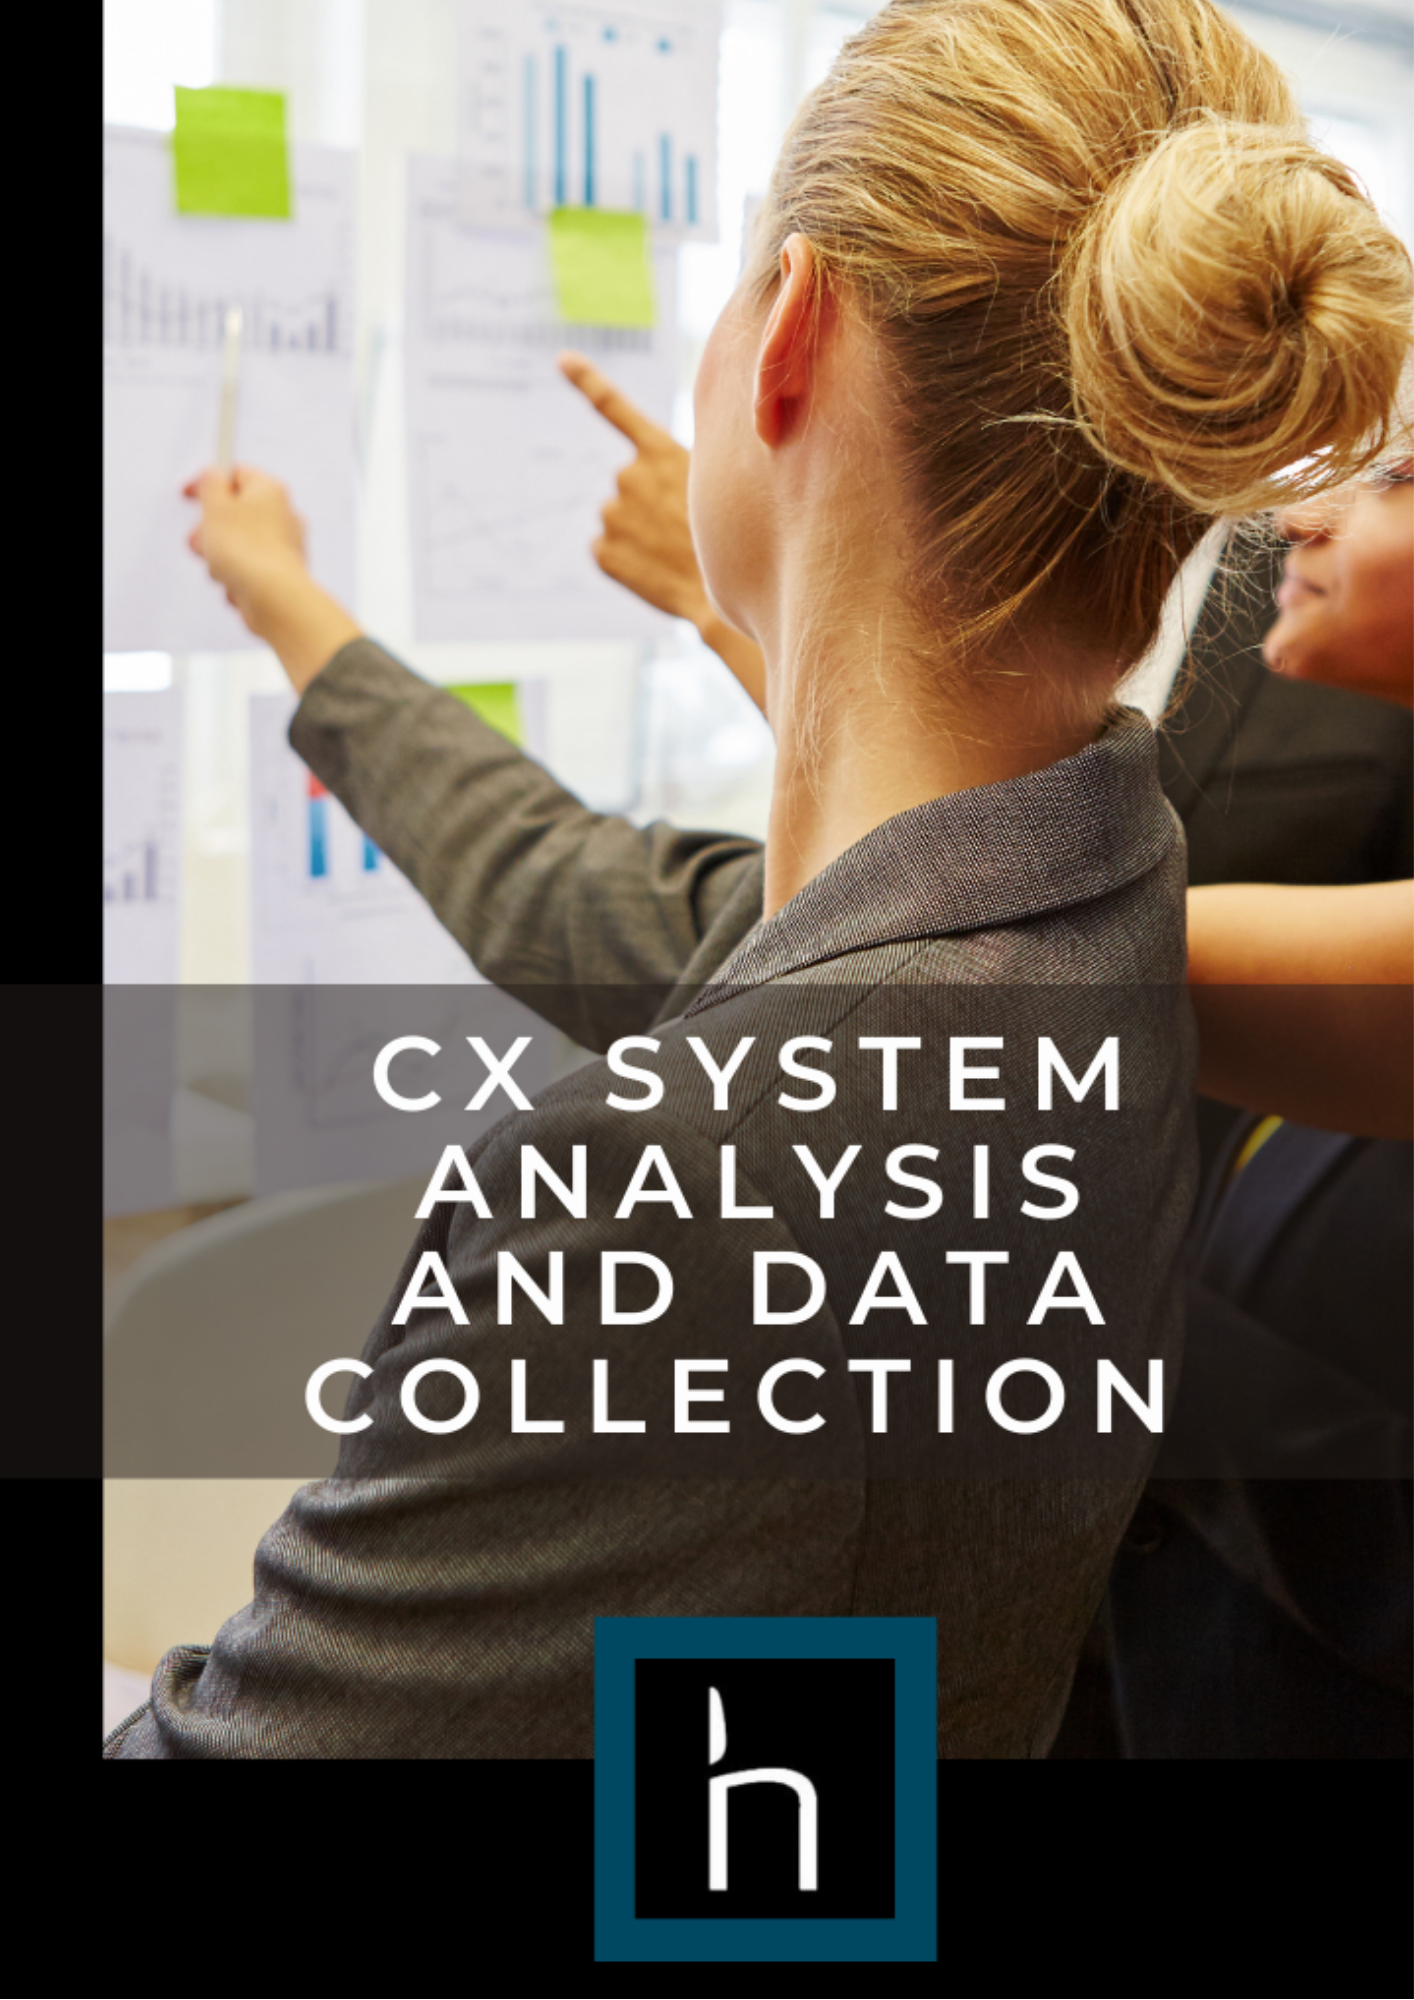 Blackchair - Brochures - CX system analysis and data collection